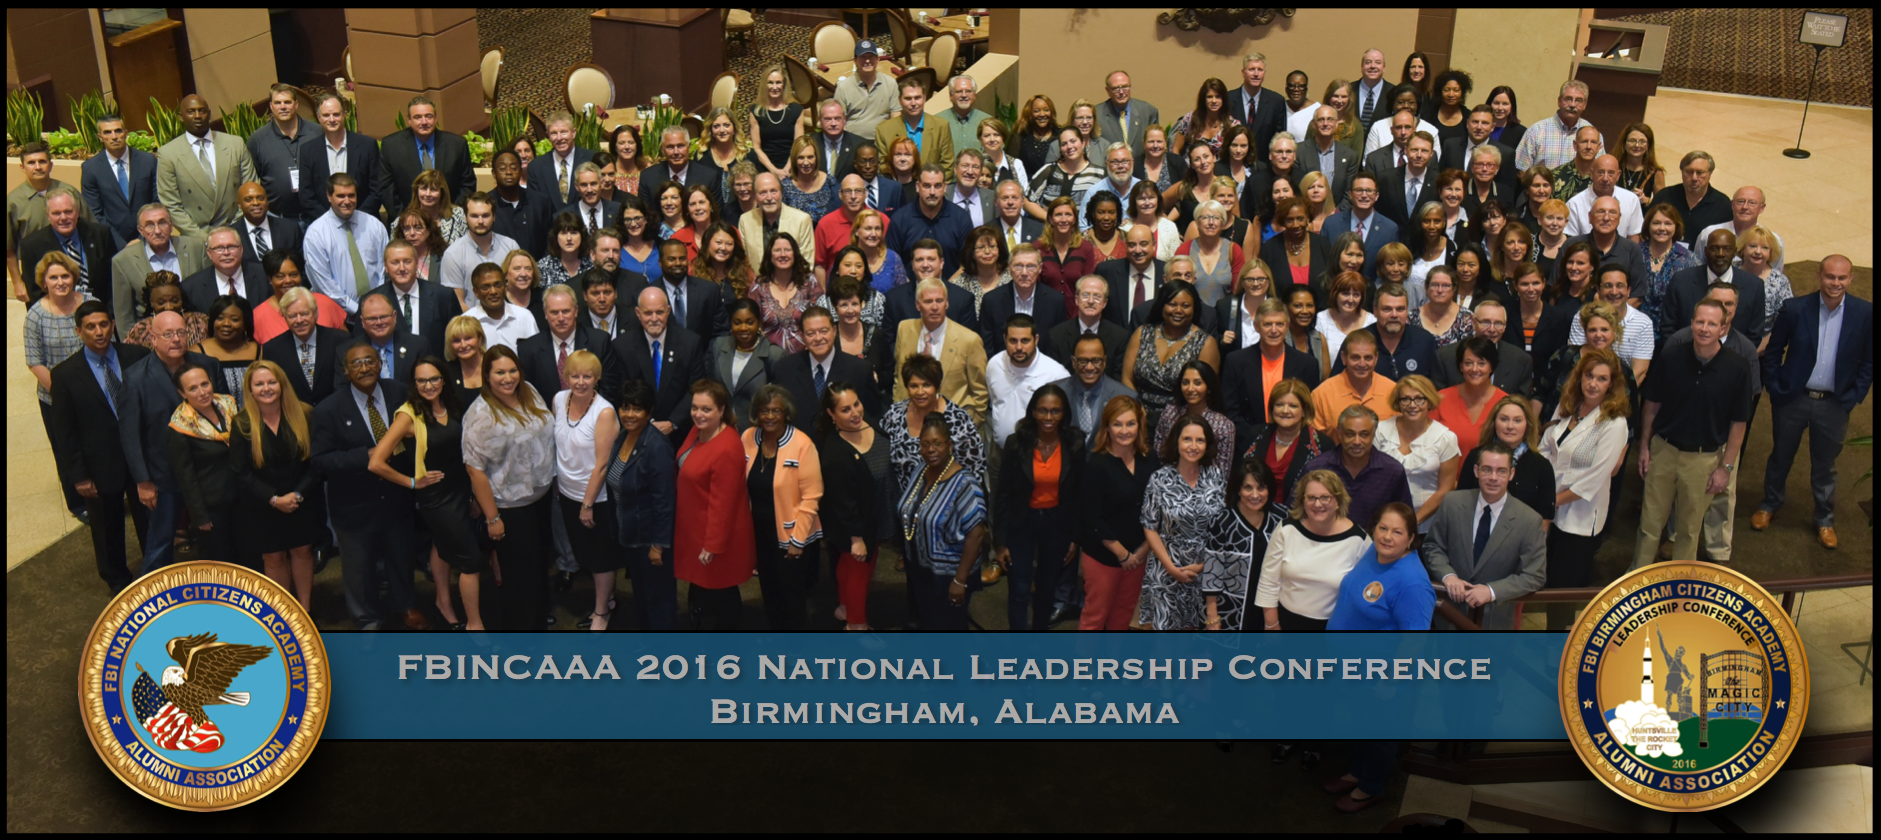 2016 NLC Group Photo